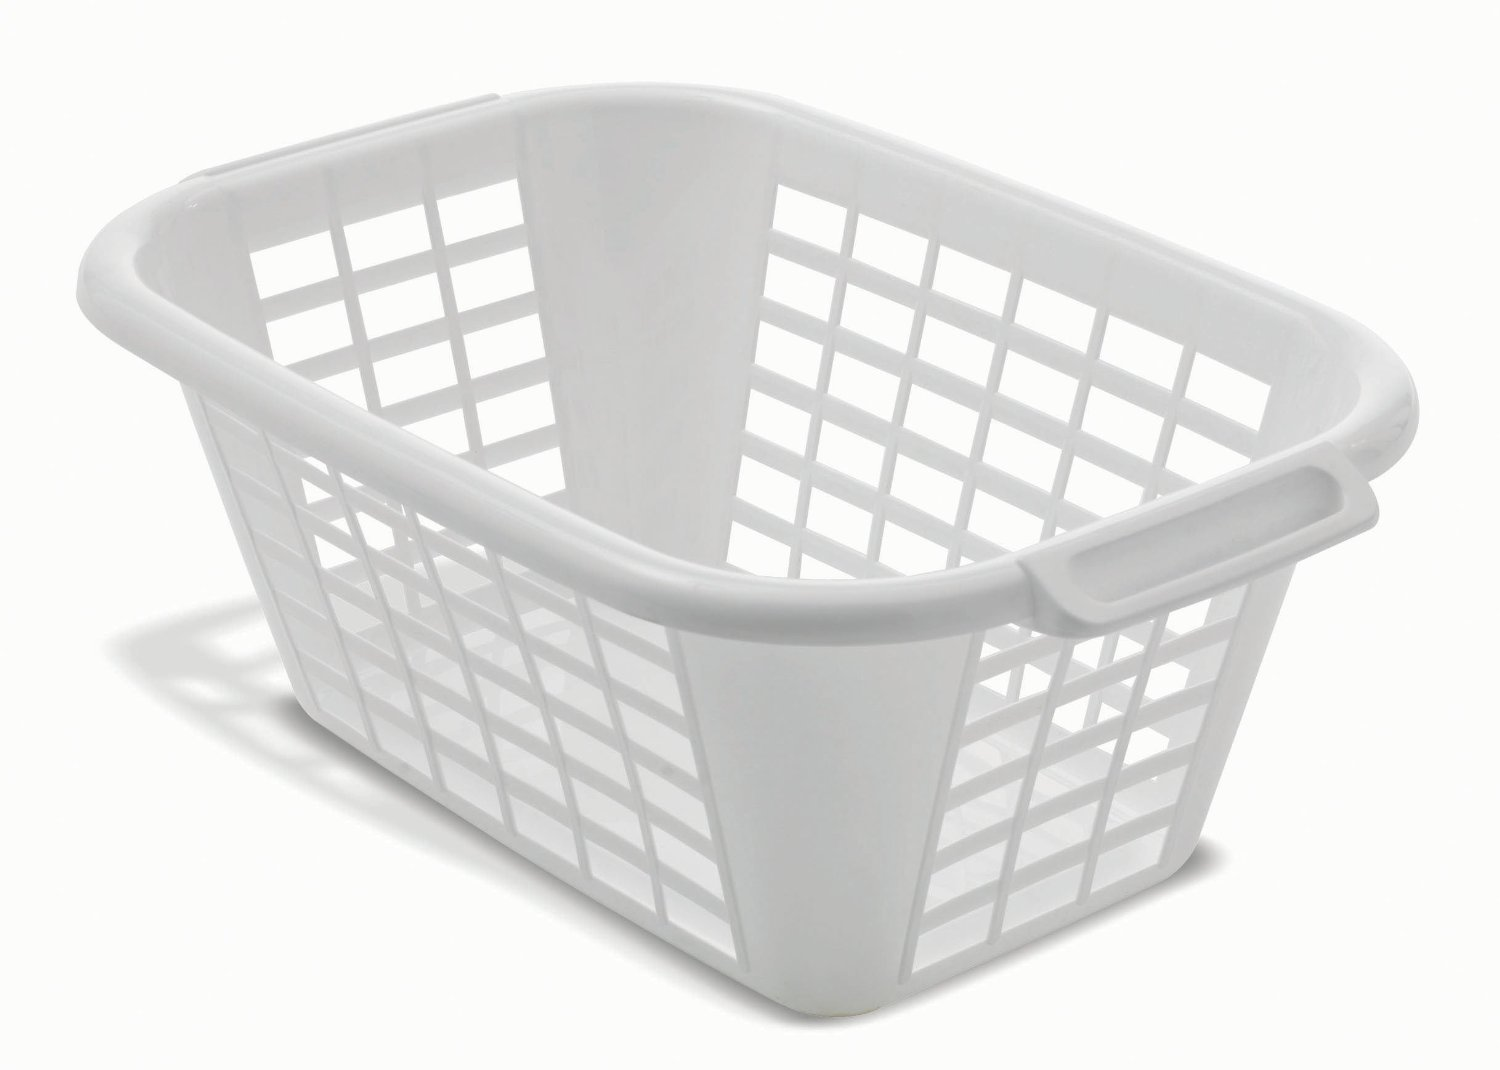 Image result for plastic washing basket